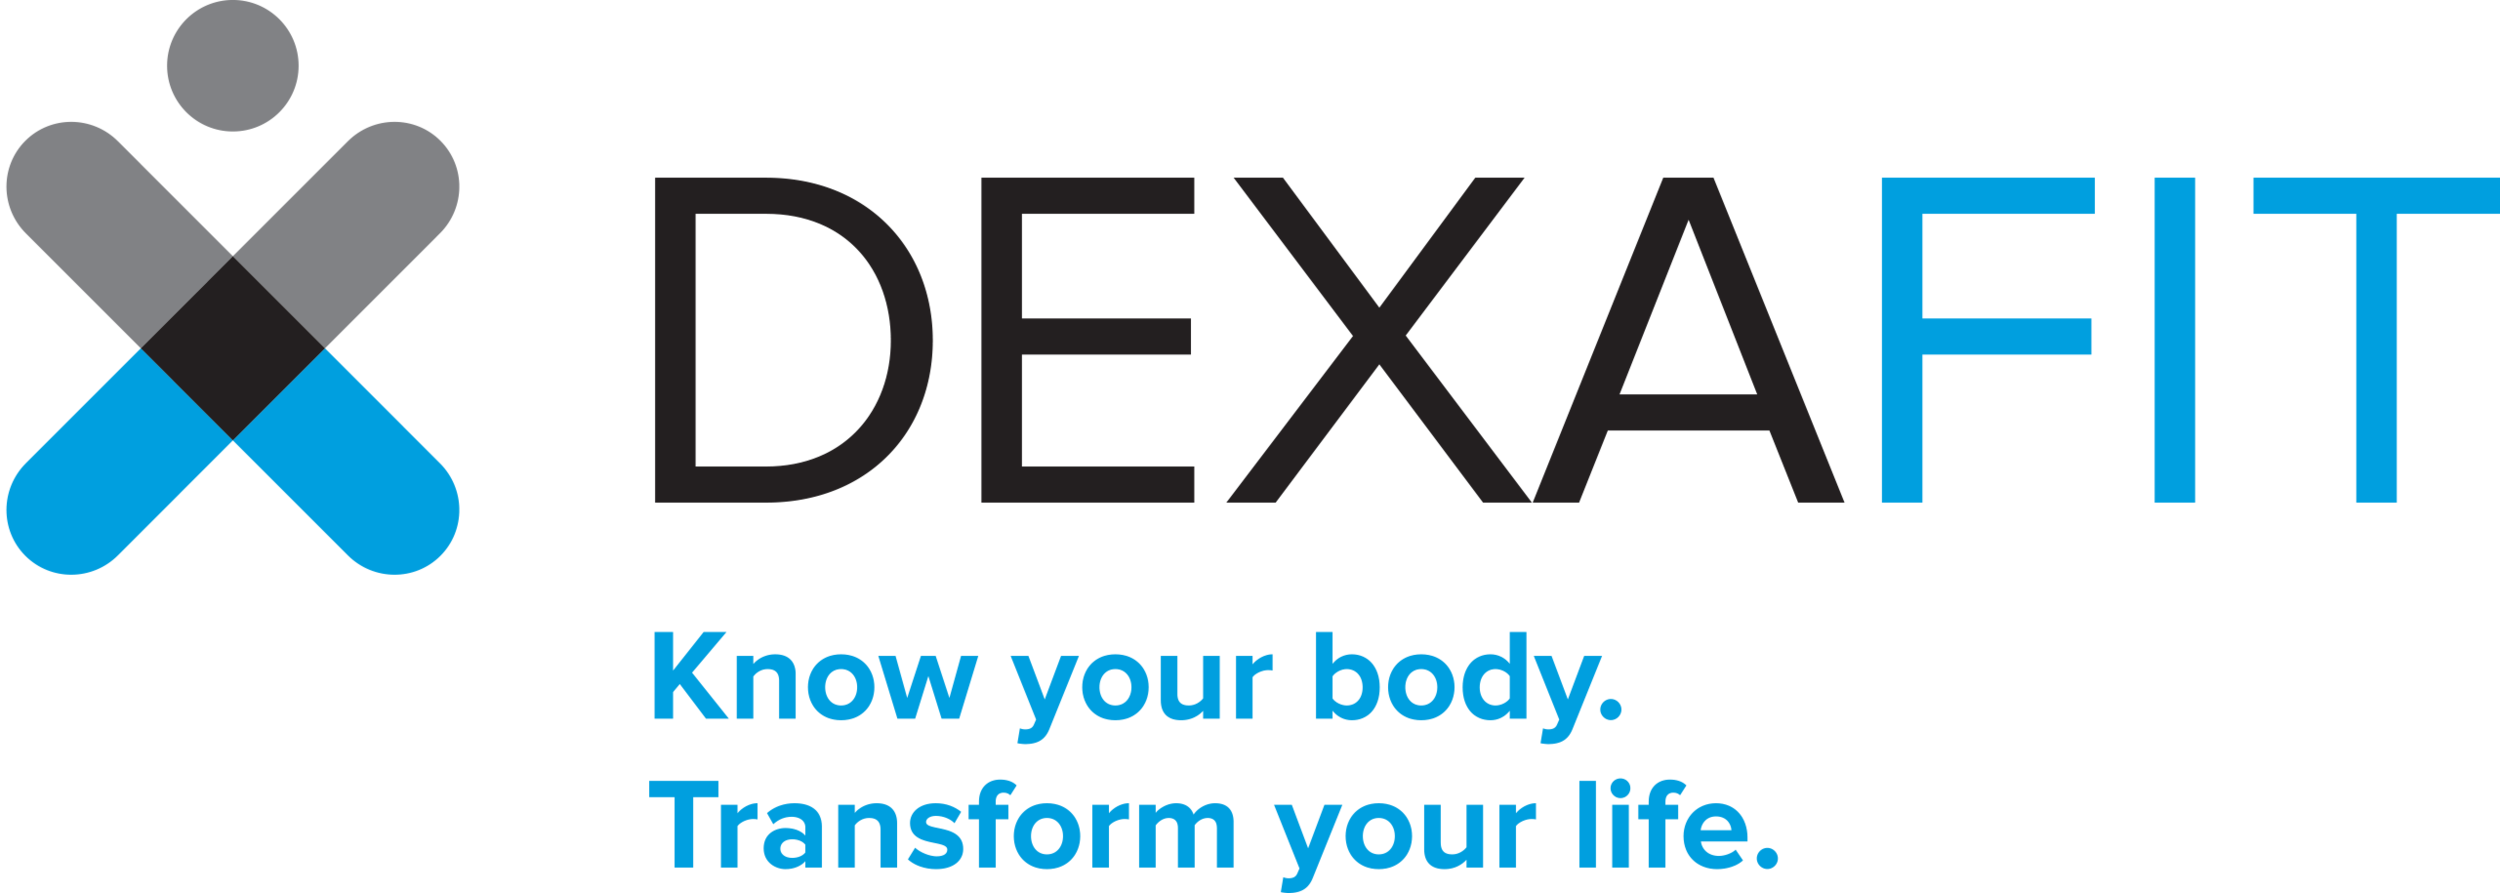 Dexifit_withtag_3 (1).png